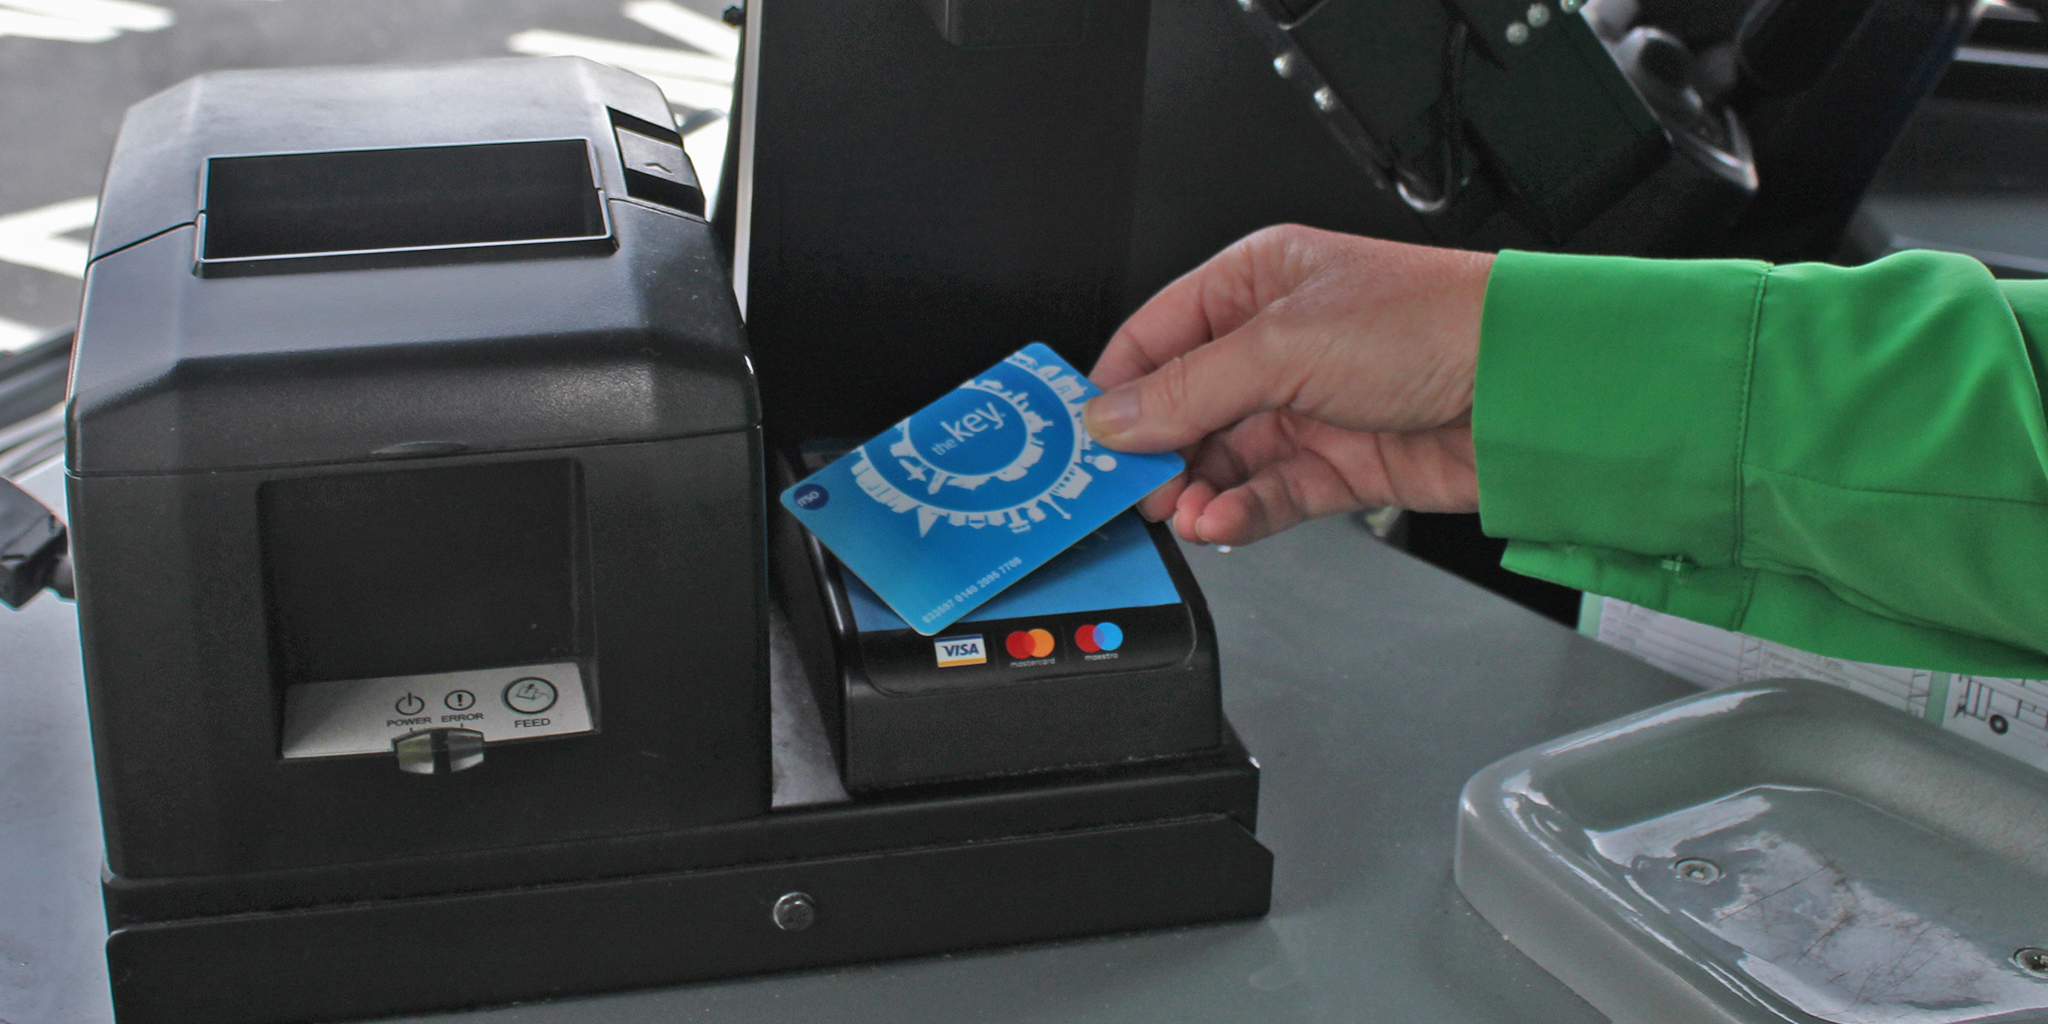 Photo of customer using theKey smart card on a more bus